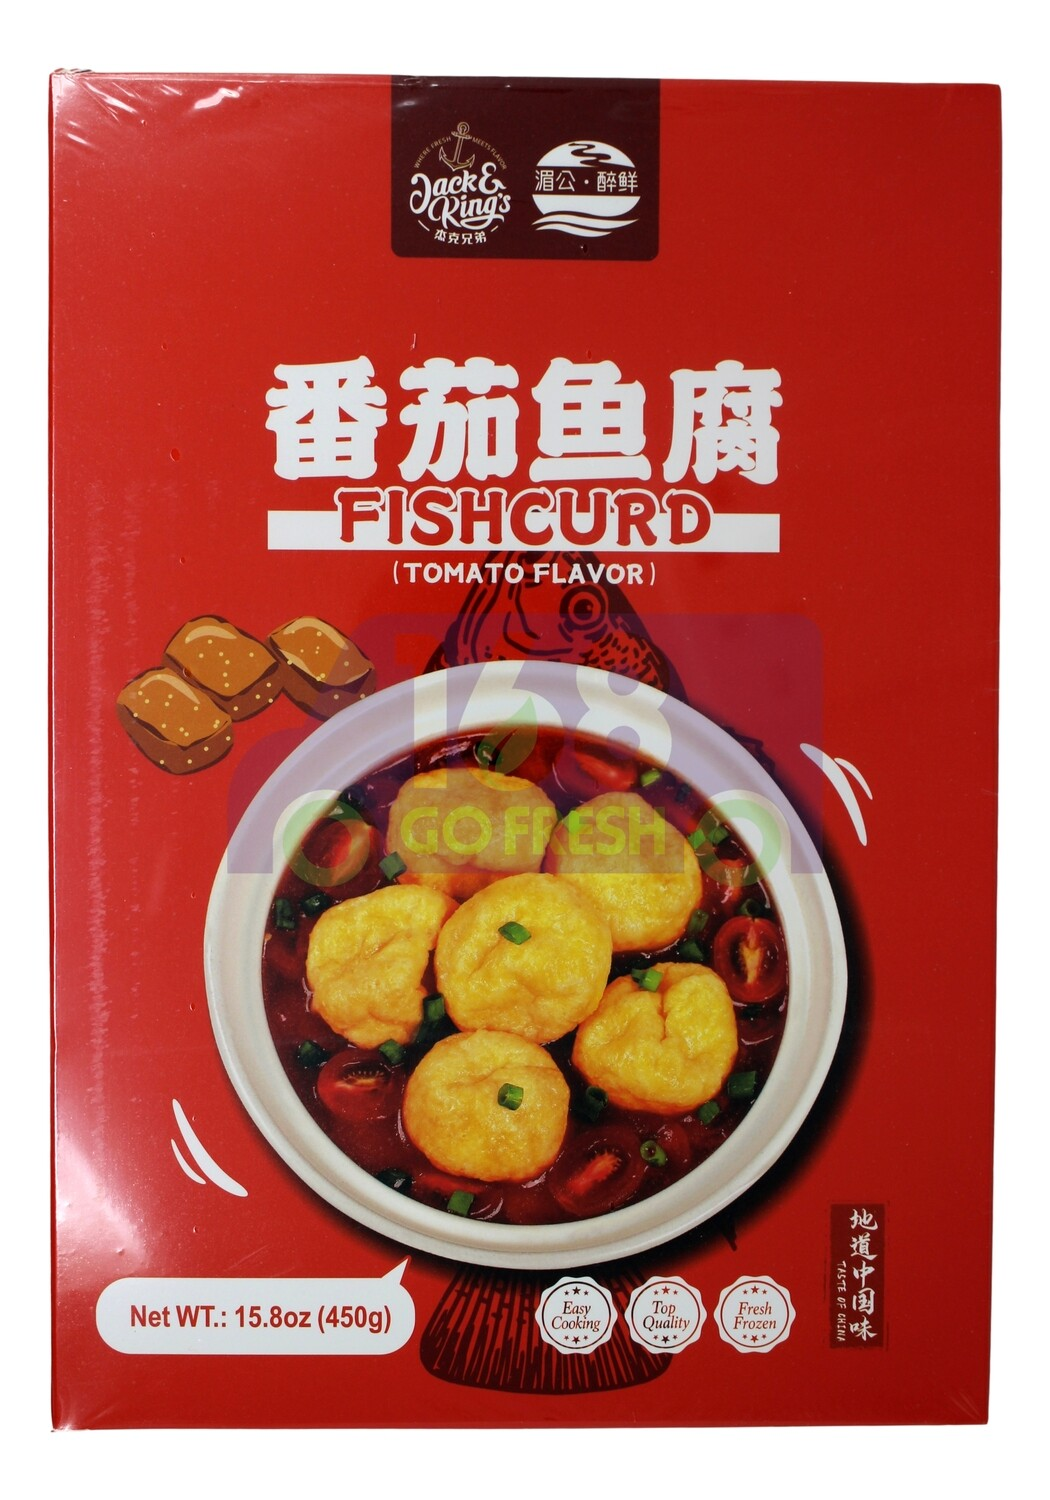 Fish Curd Tomato Flavor 湄公 酔鲜 番茄鱼腐(15.8OZ)